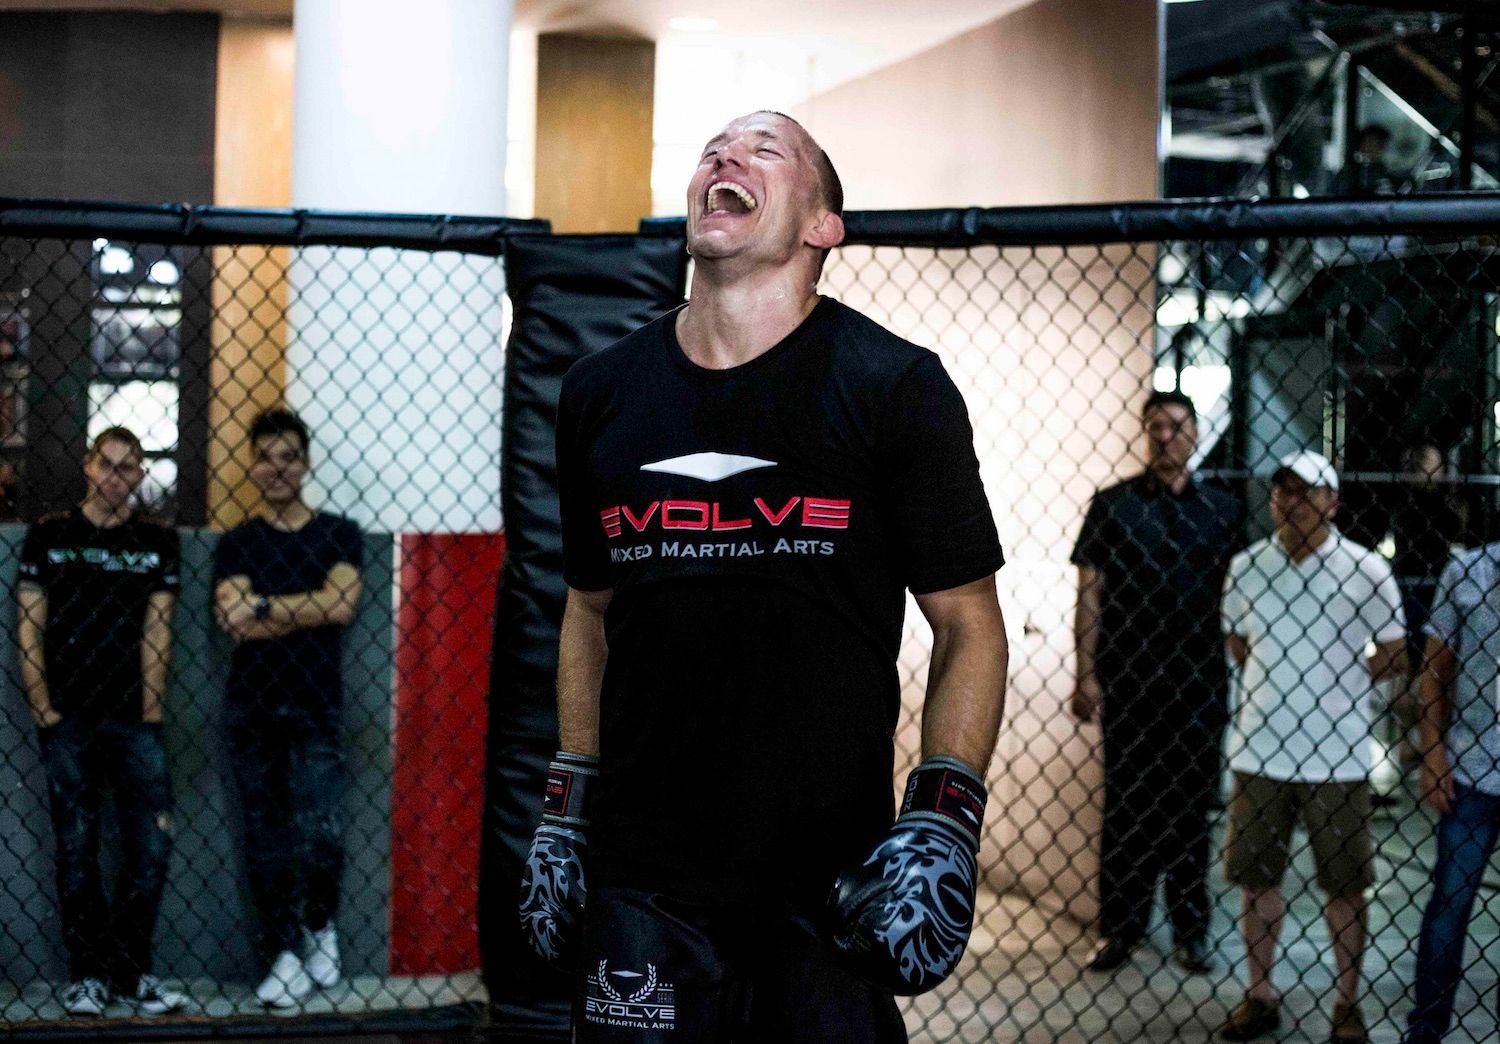 MMA Legend GSP laughs during training at Evolve MMA